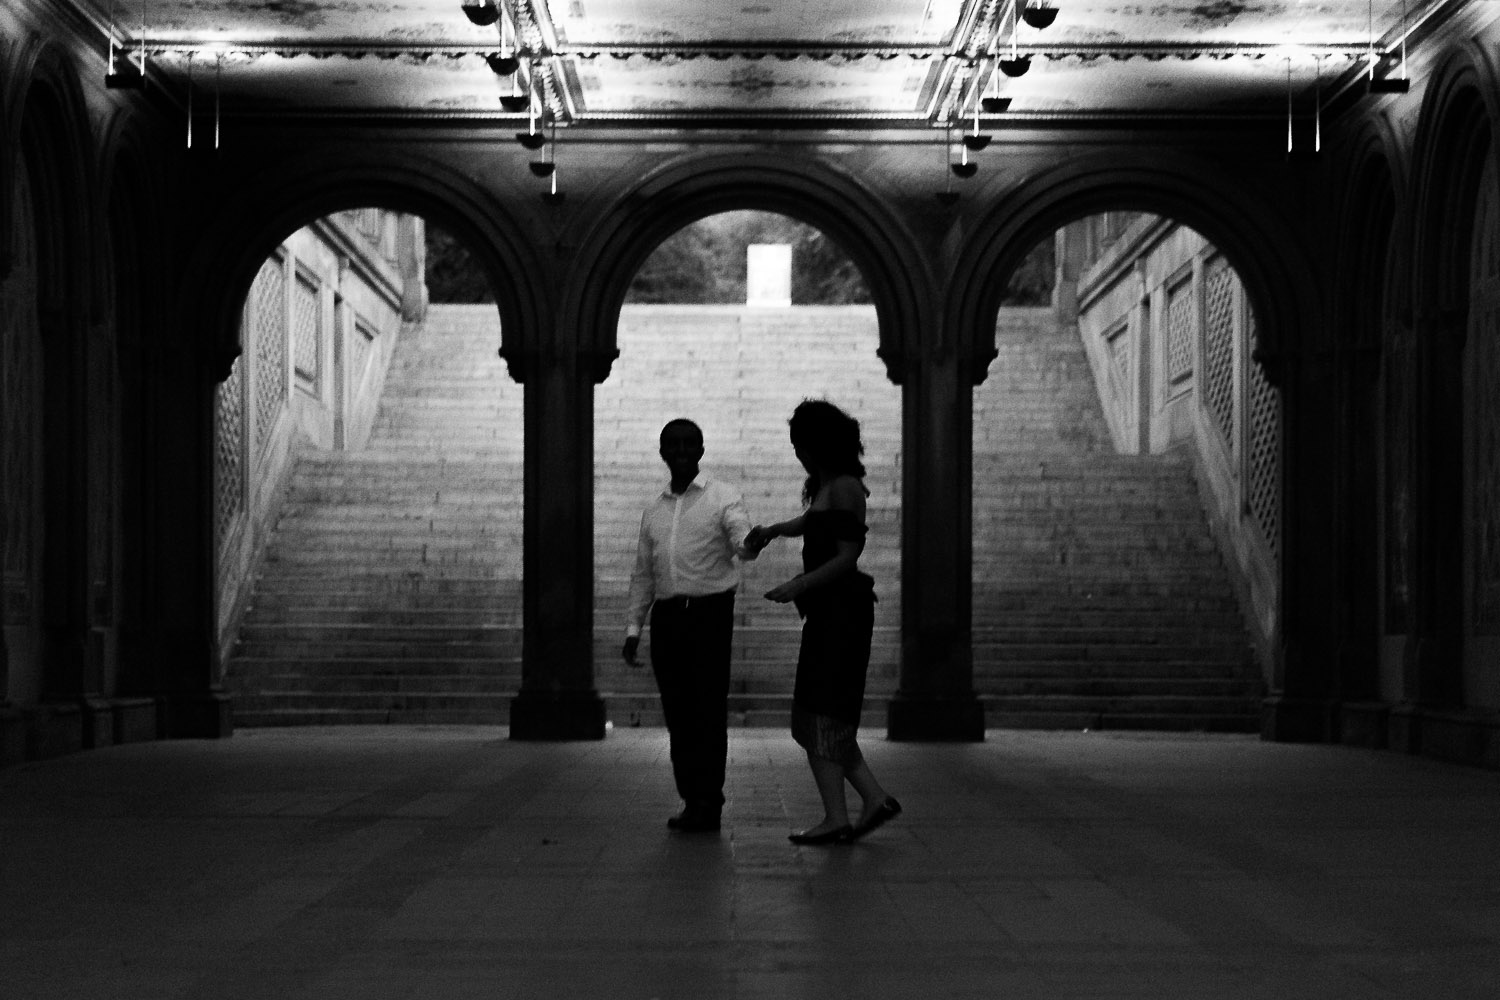 engagement-photography-central-park-nyc